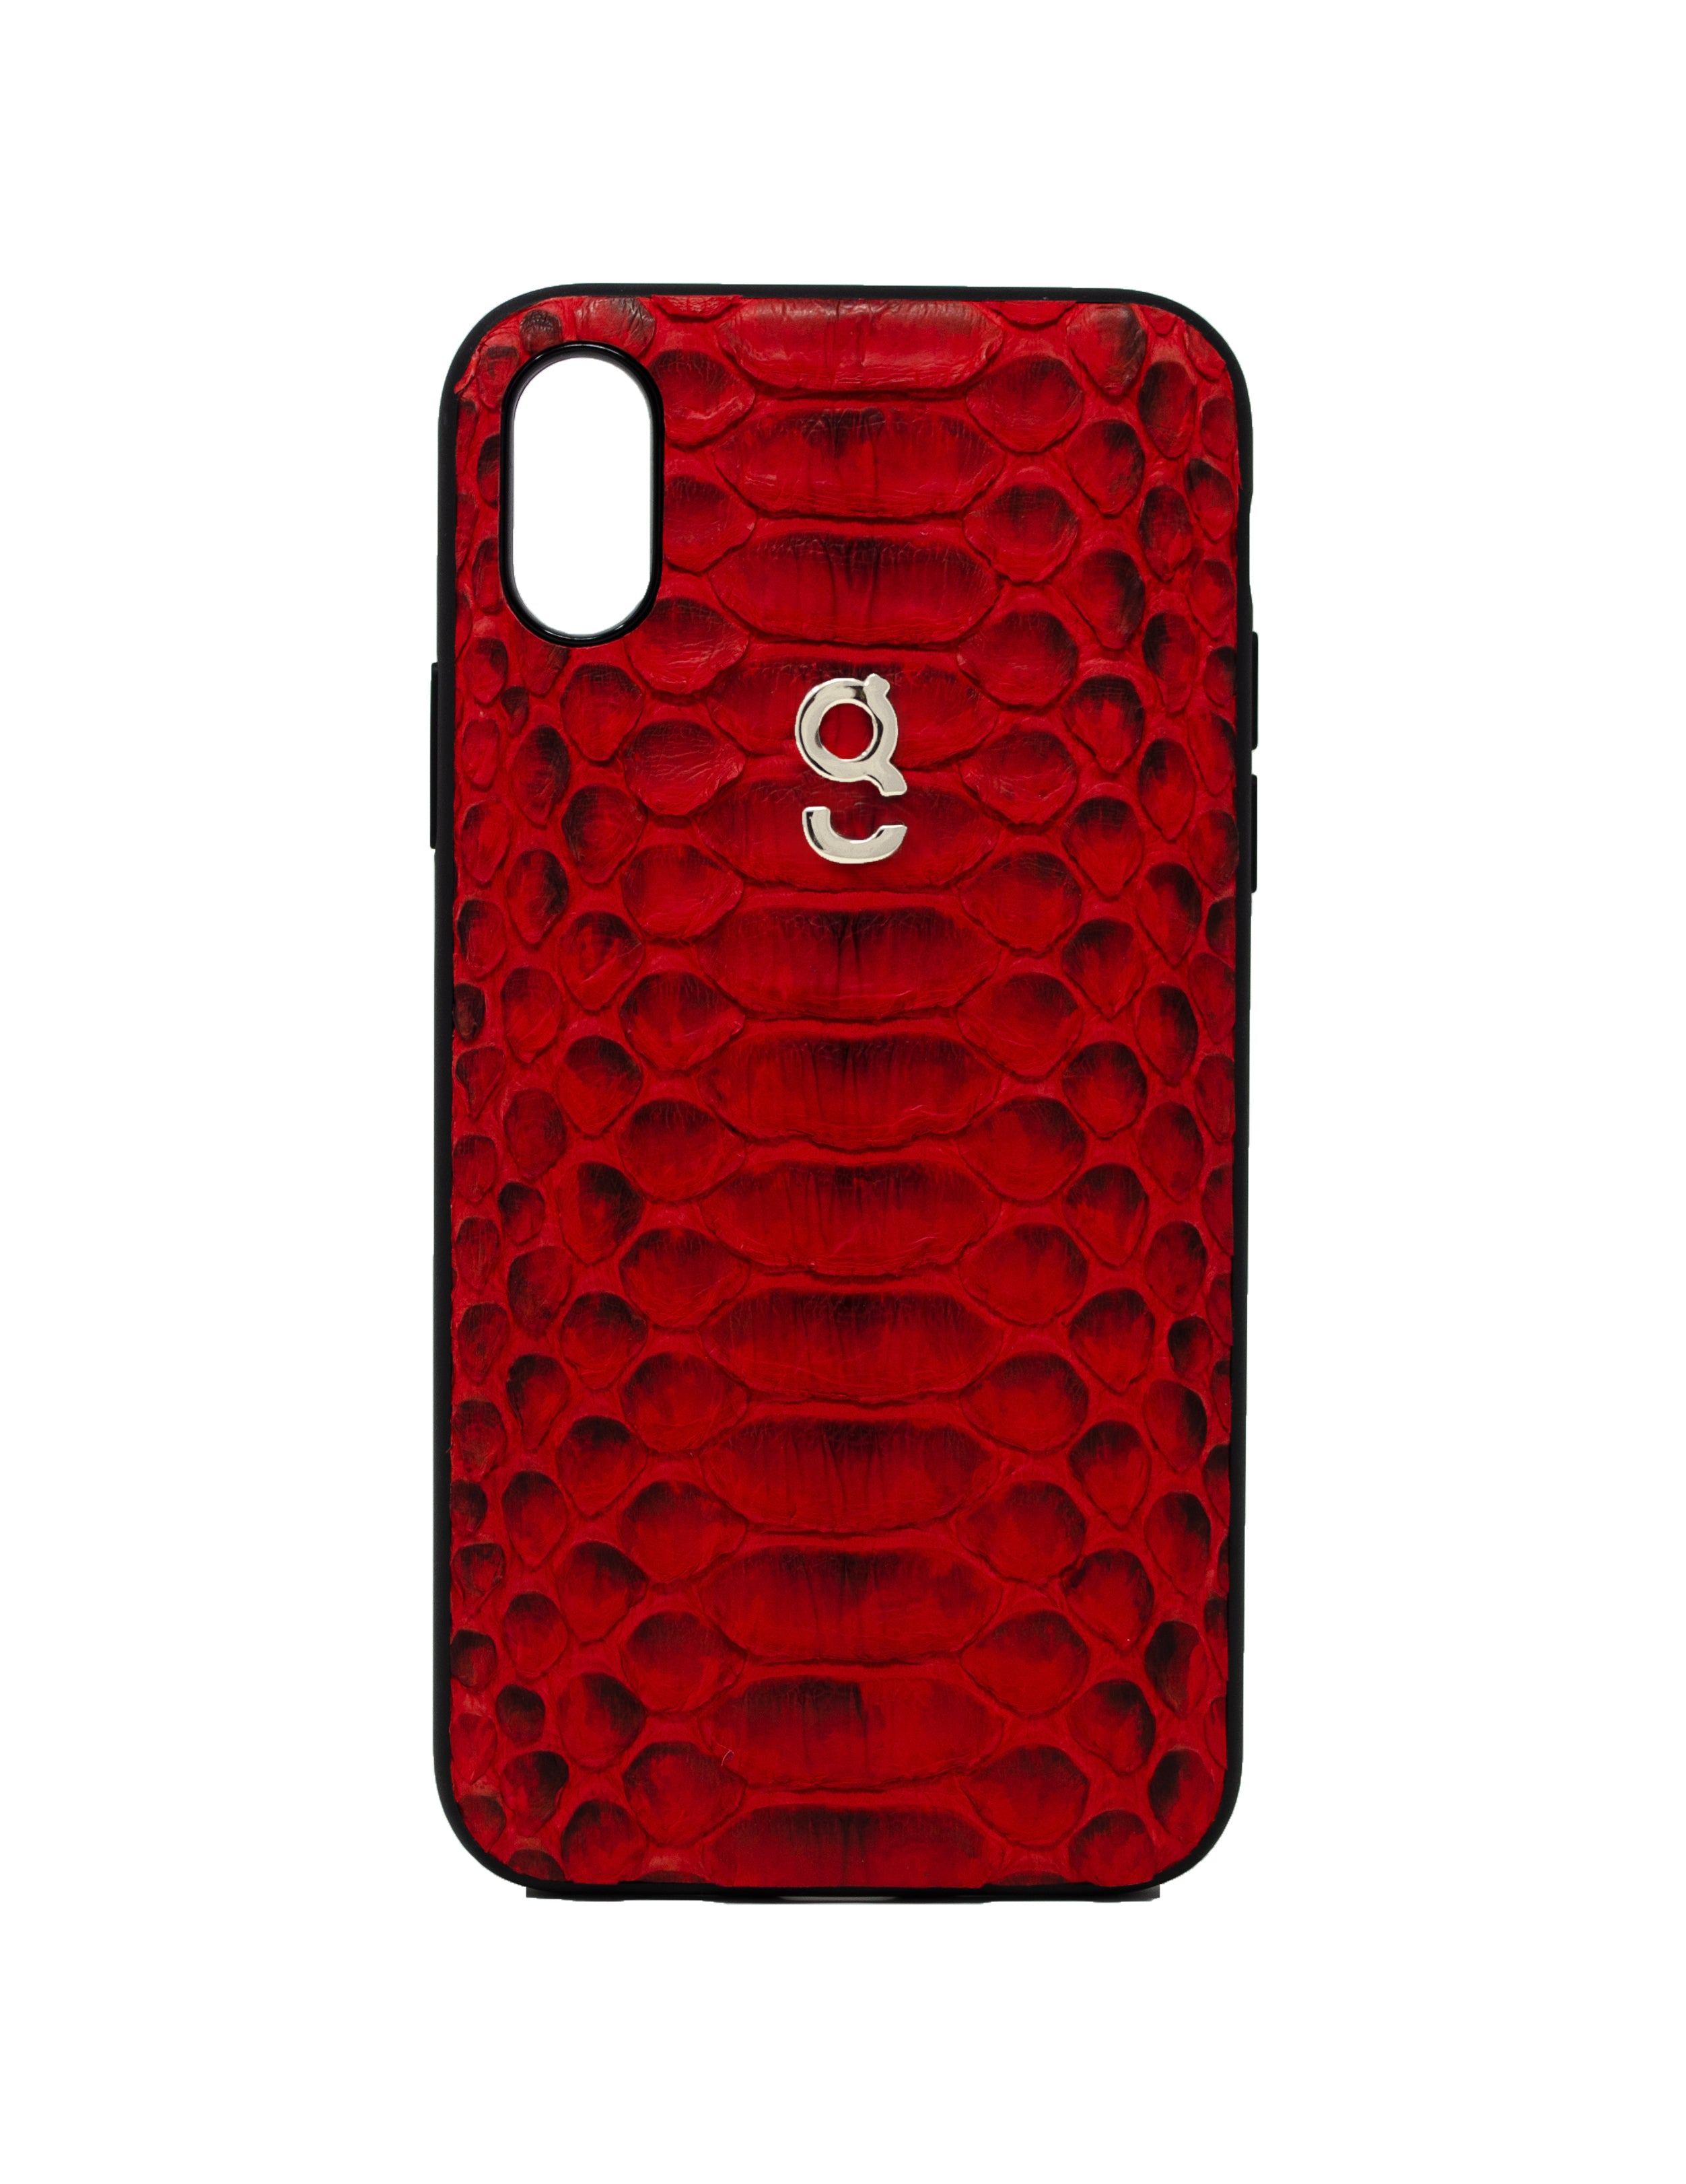 Exotic Red - iPhone case - gcoulee